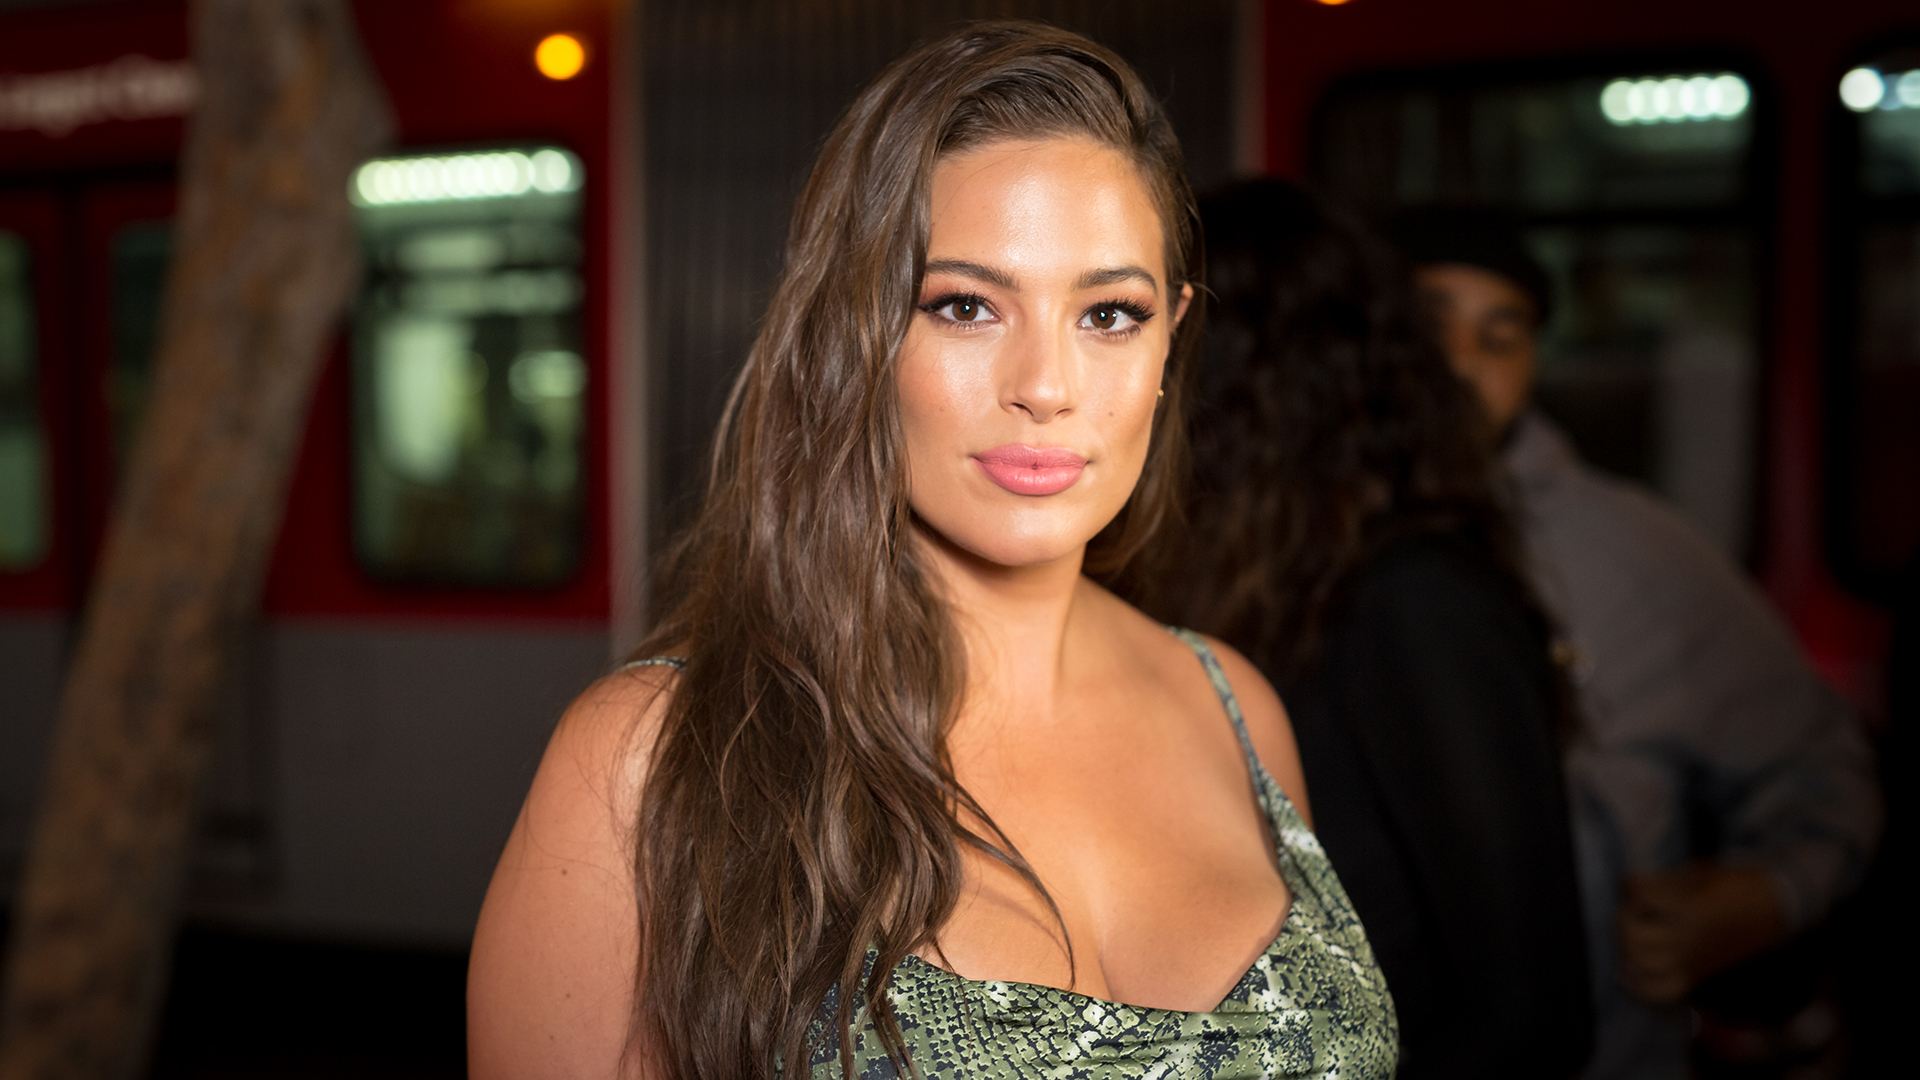 Ashley Graham Nude Selfie Reminds Us That Stretch Marks